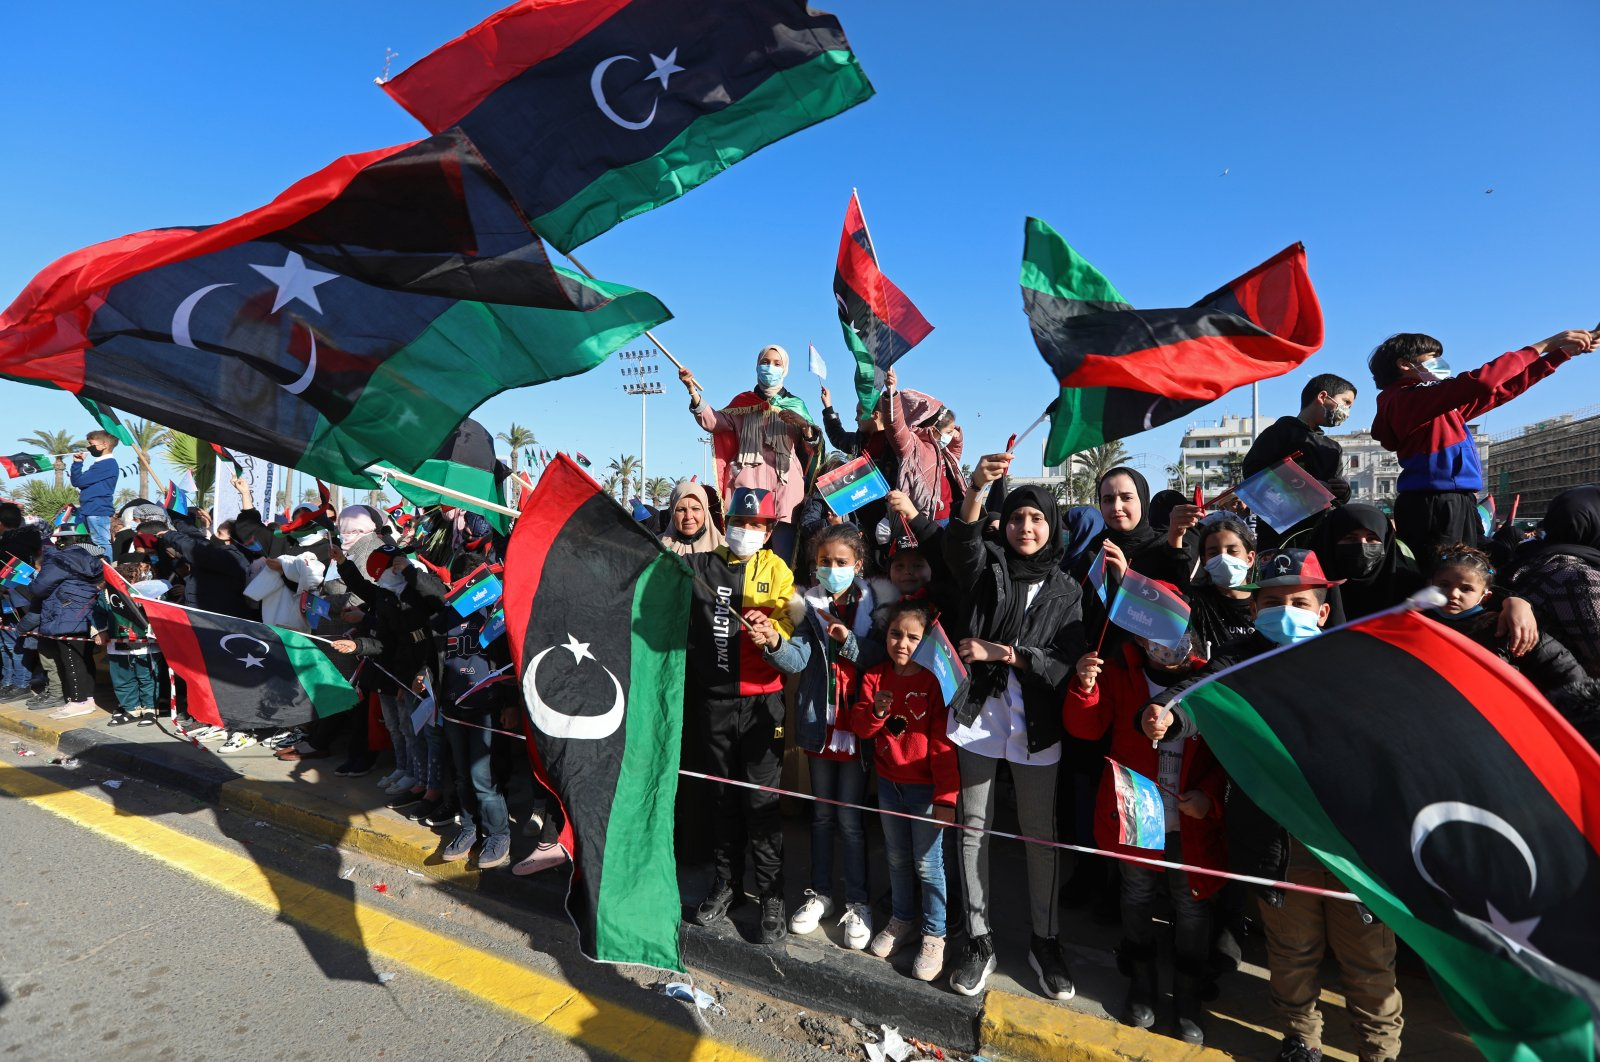 Under tight security, Libyans mark the 10th anniversary of their 2011 uprising that led to the overthrow and killing of longtime ruler Moammar Gadhafi in Martyrs Square, Tripoli, Libya. (AP File Photo)